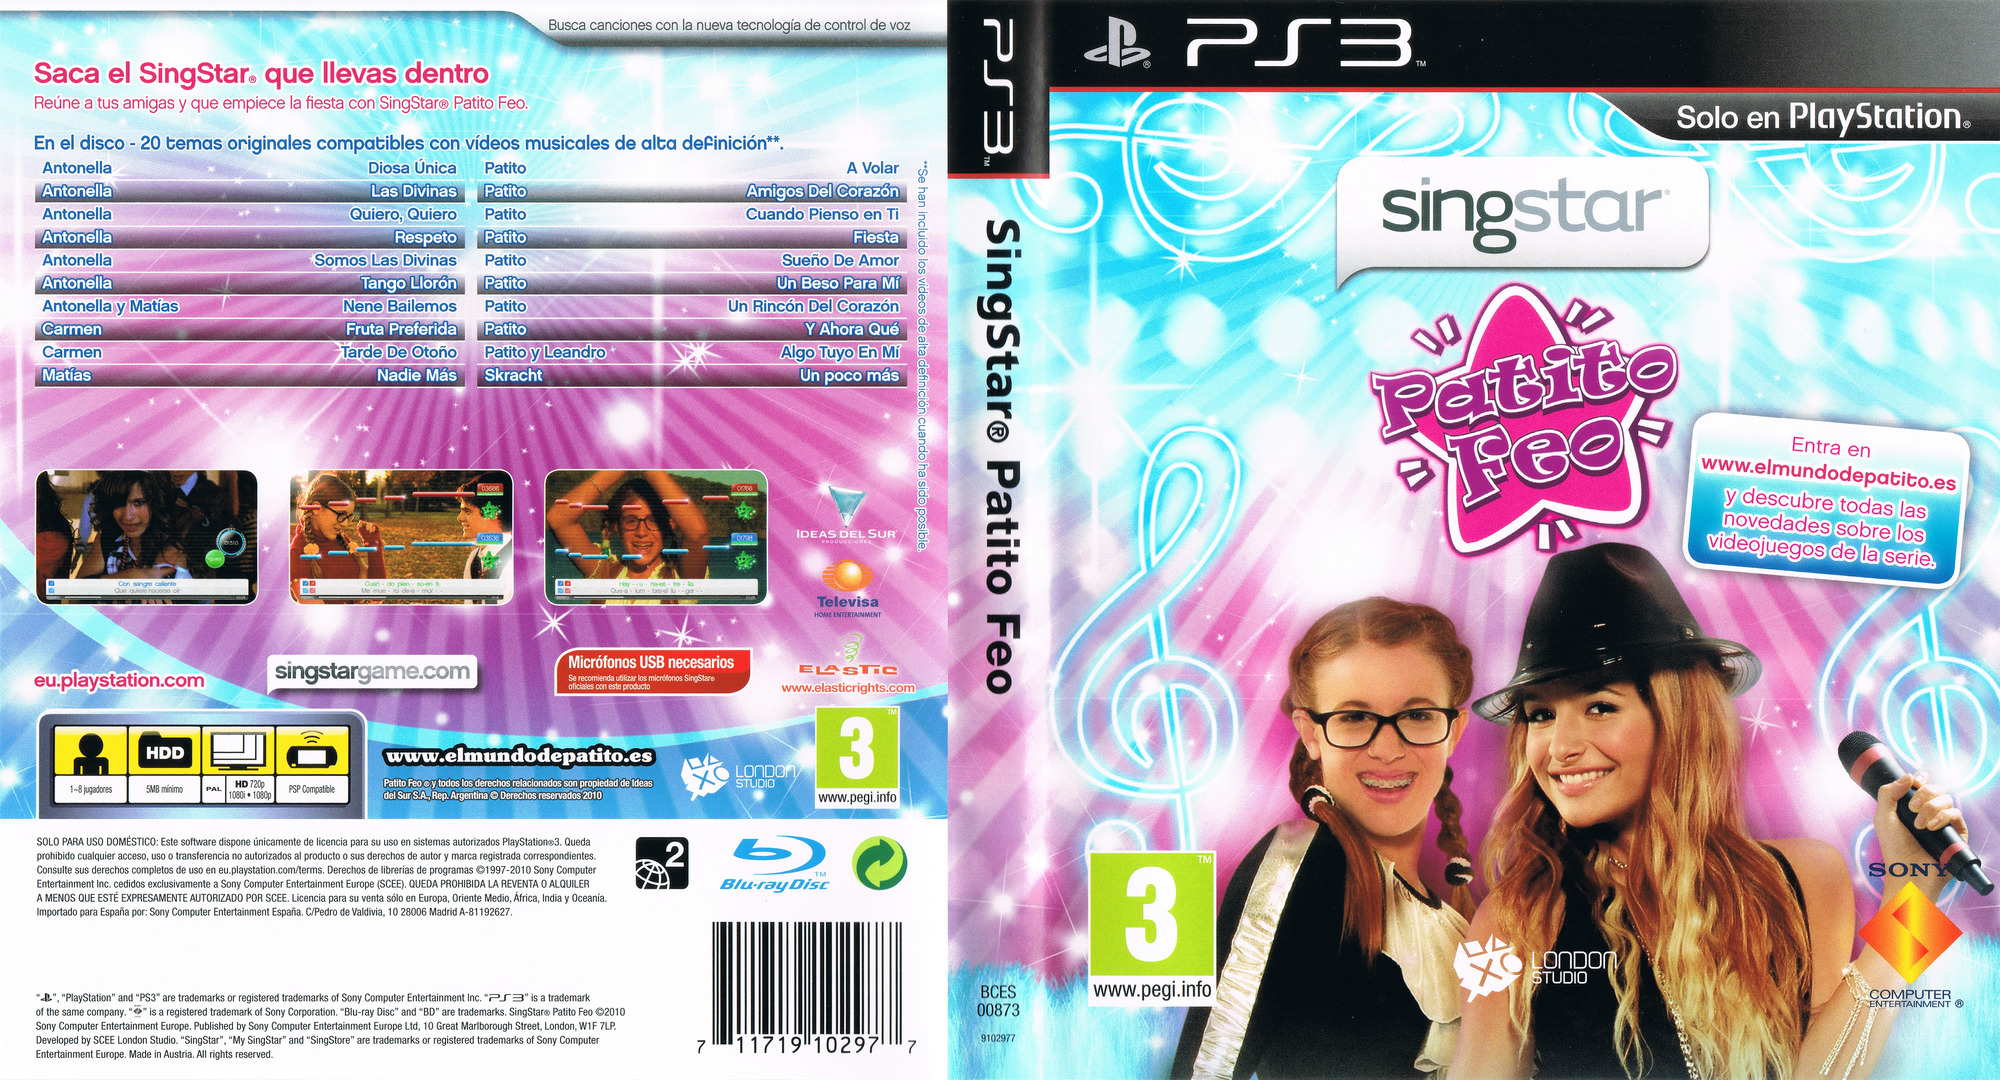 SingStar Patito Feo PS3 coverfullHQ (BCES00873)